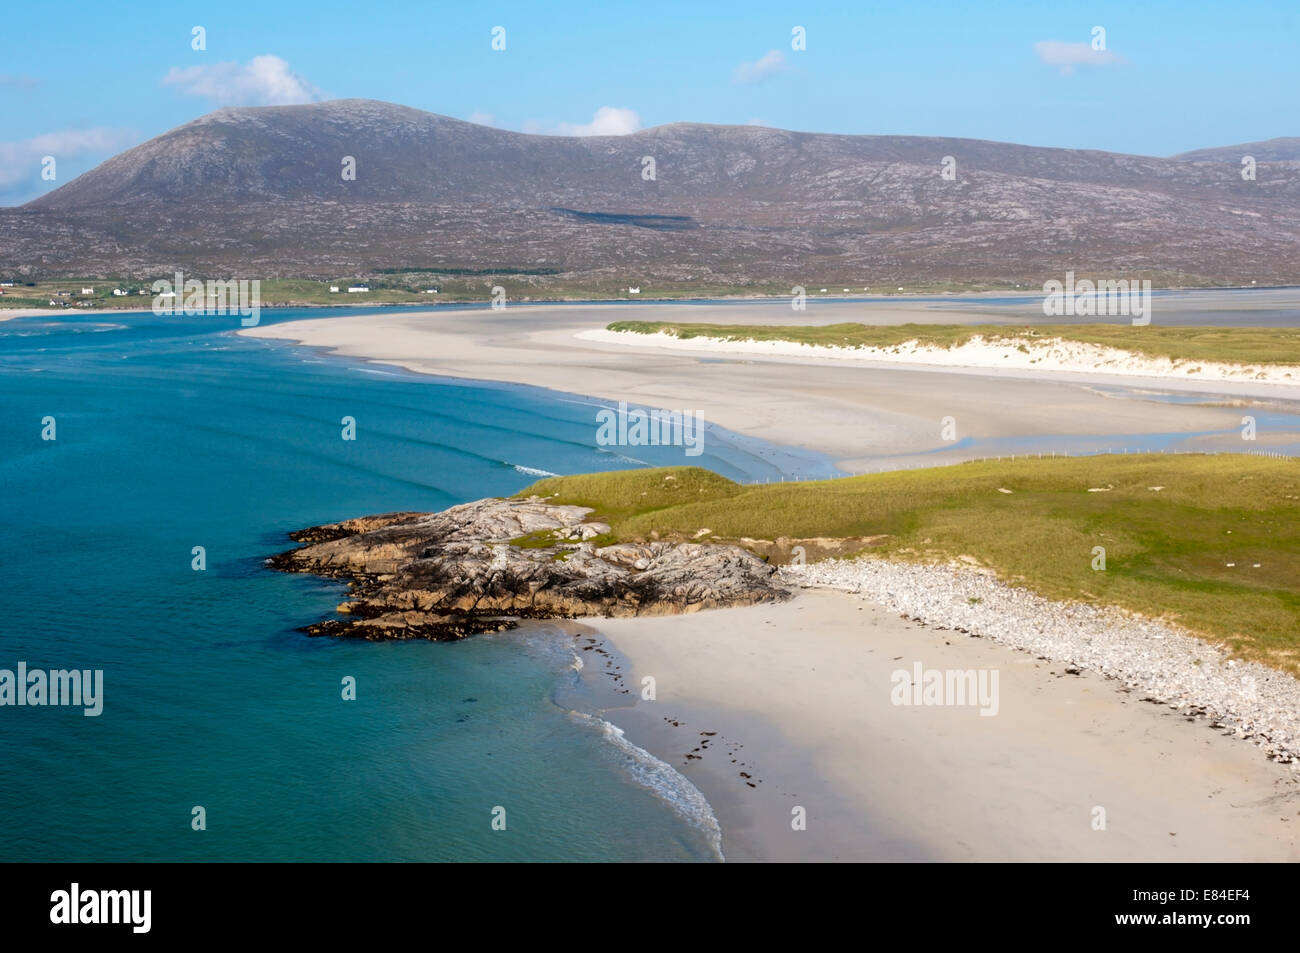 Luskentyre Beach on the west coast of the Isle of Harris in the Outer Hebrides. - Stock Image